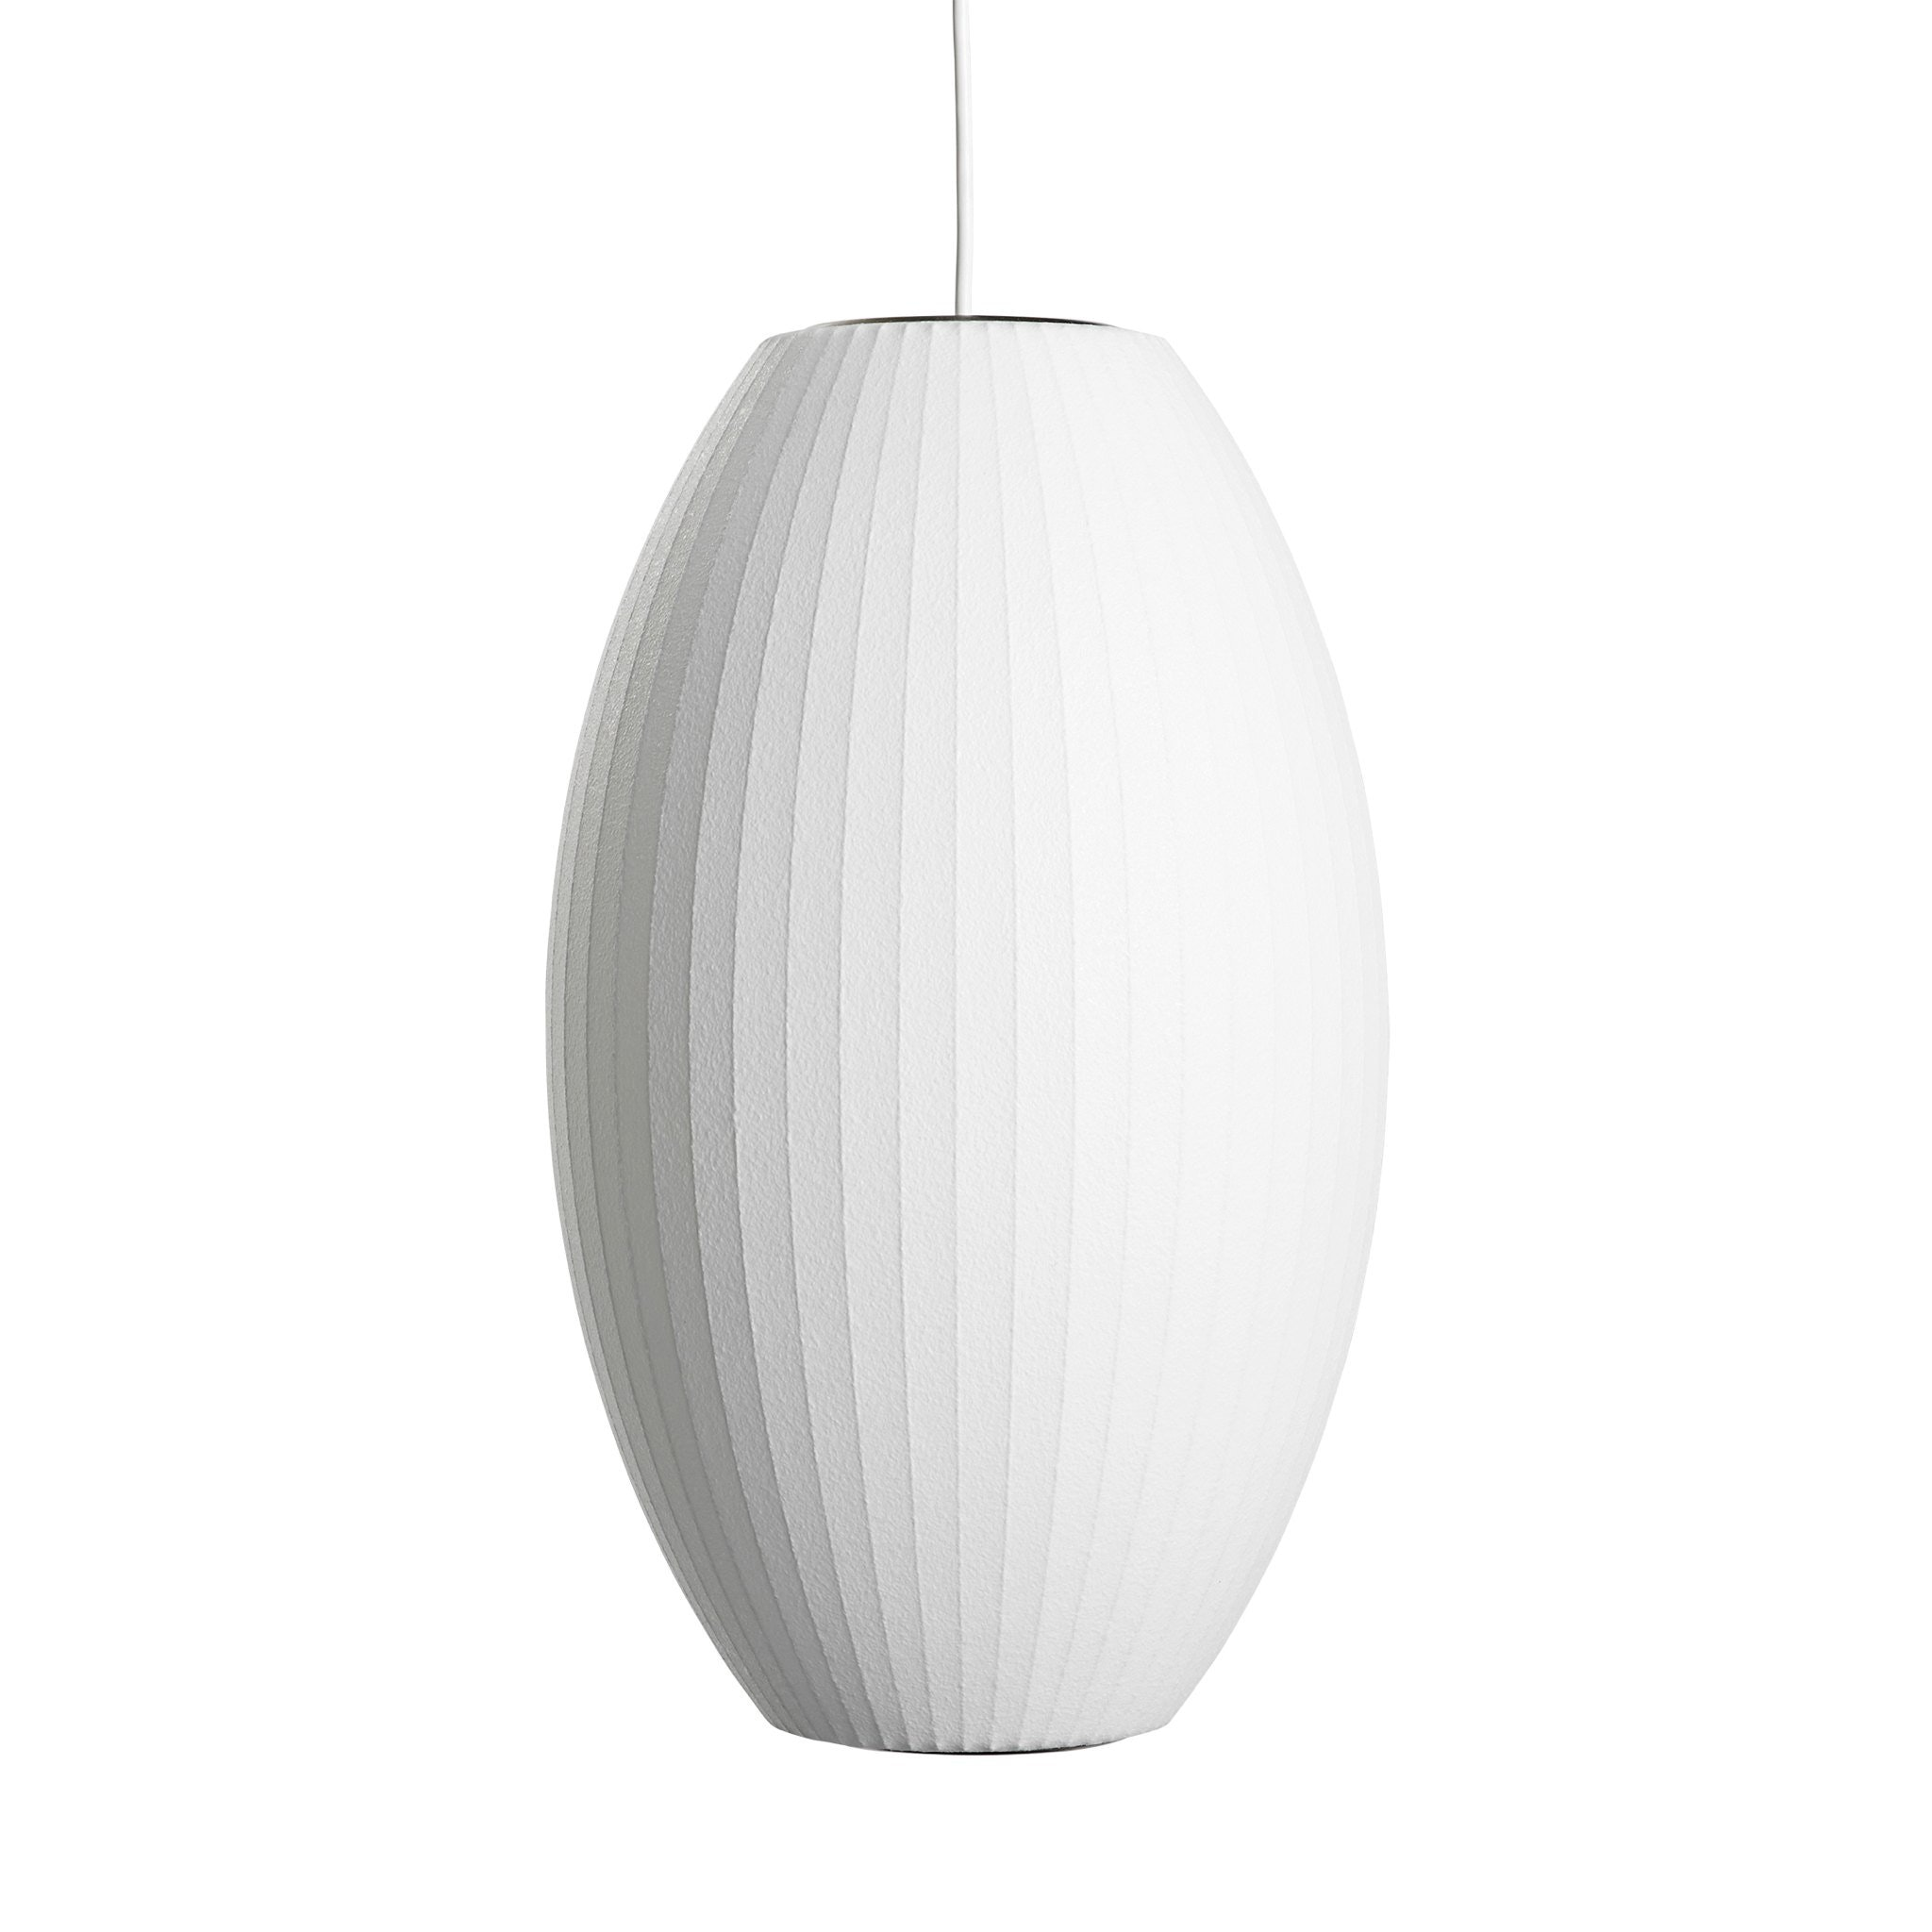 Cigar Bubble Light by Herman Miller